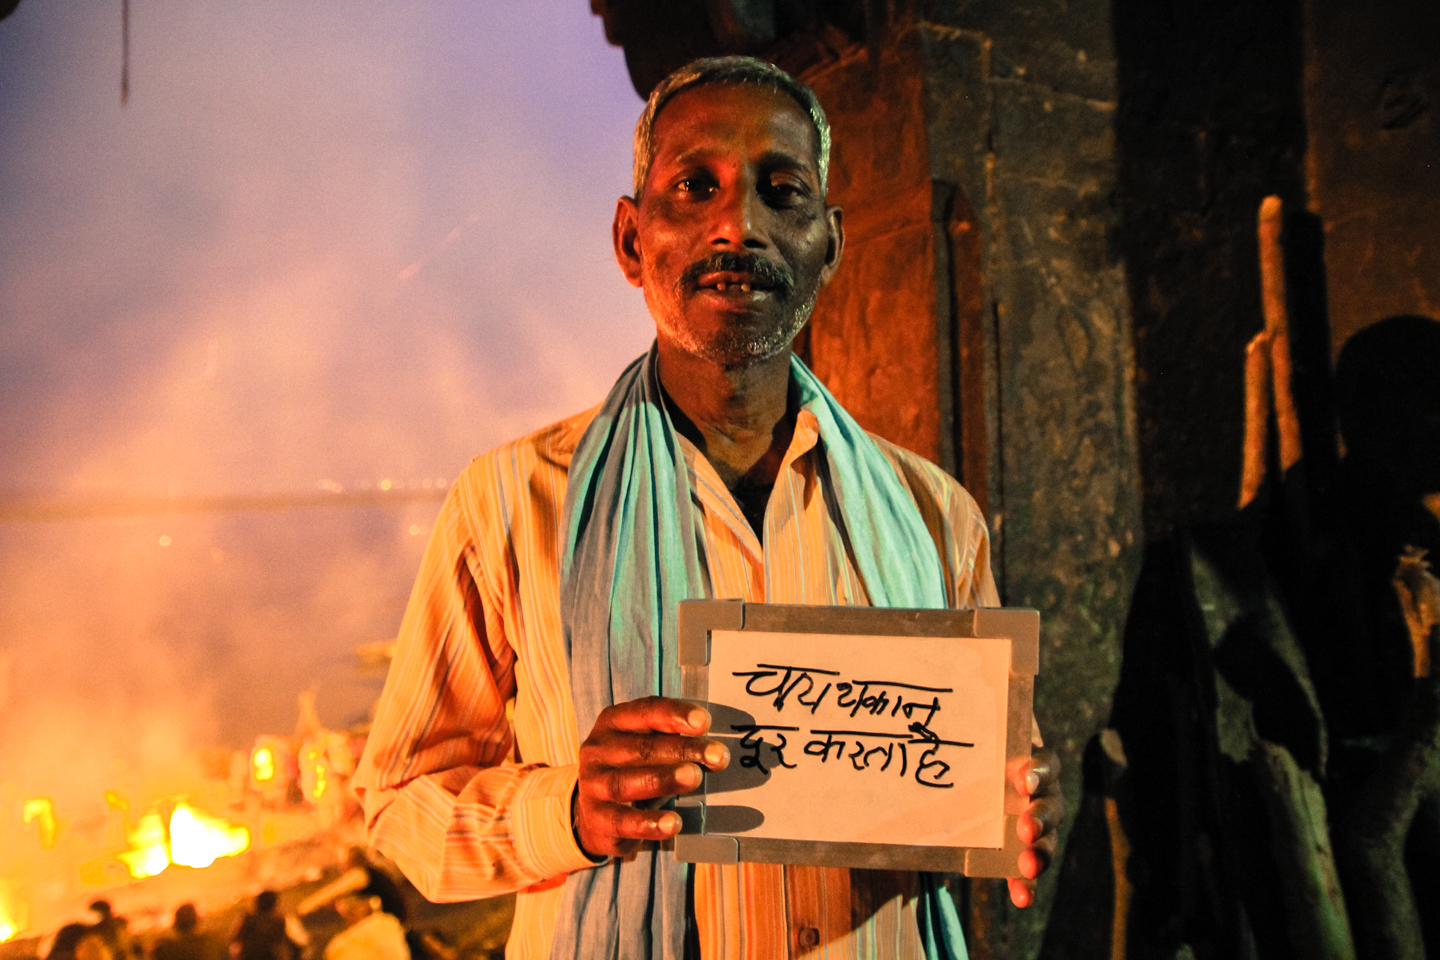 Salu spends his days and nights showing tourists around the burning ghats on the banks of the holy Ganges River in Varanasi, considered to be the most auspicious place for Hindus to cremate their dead.